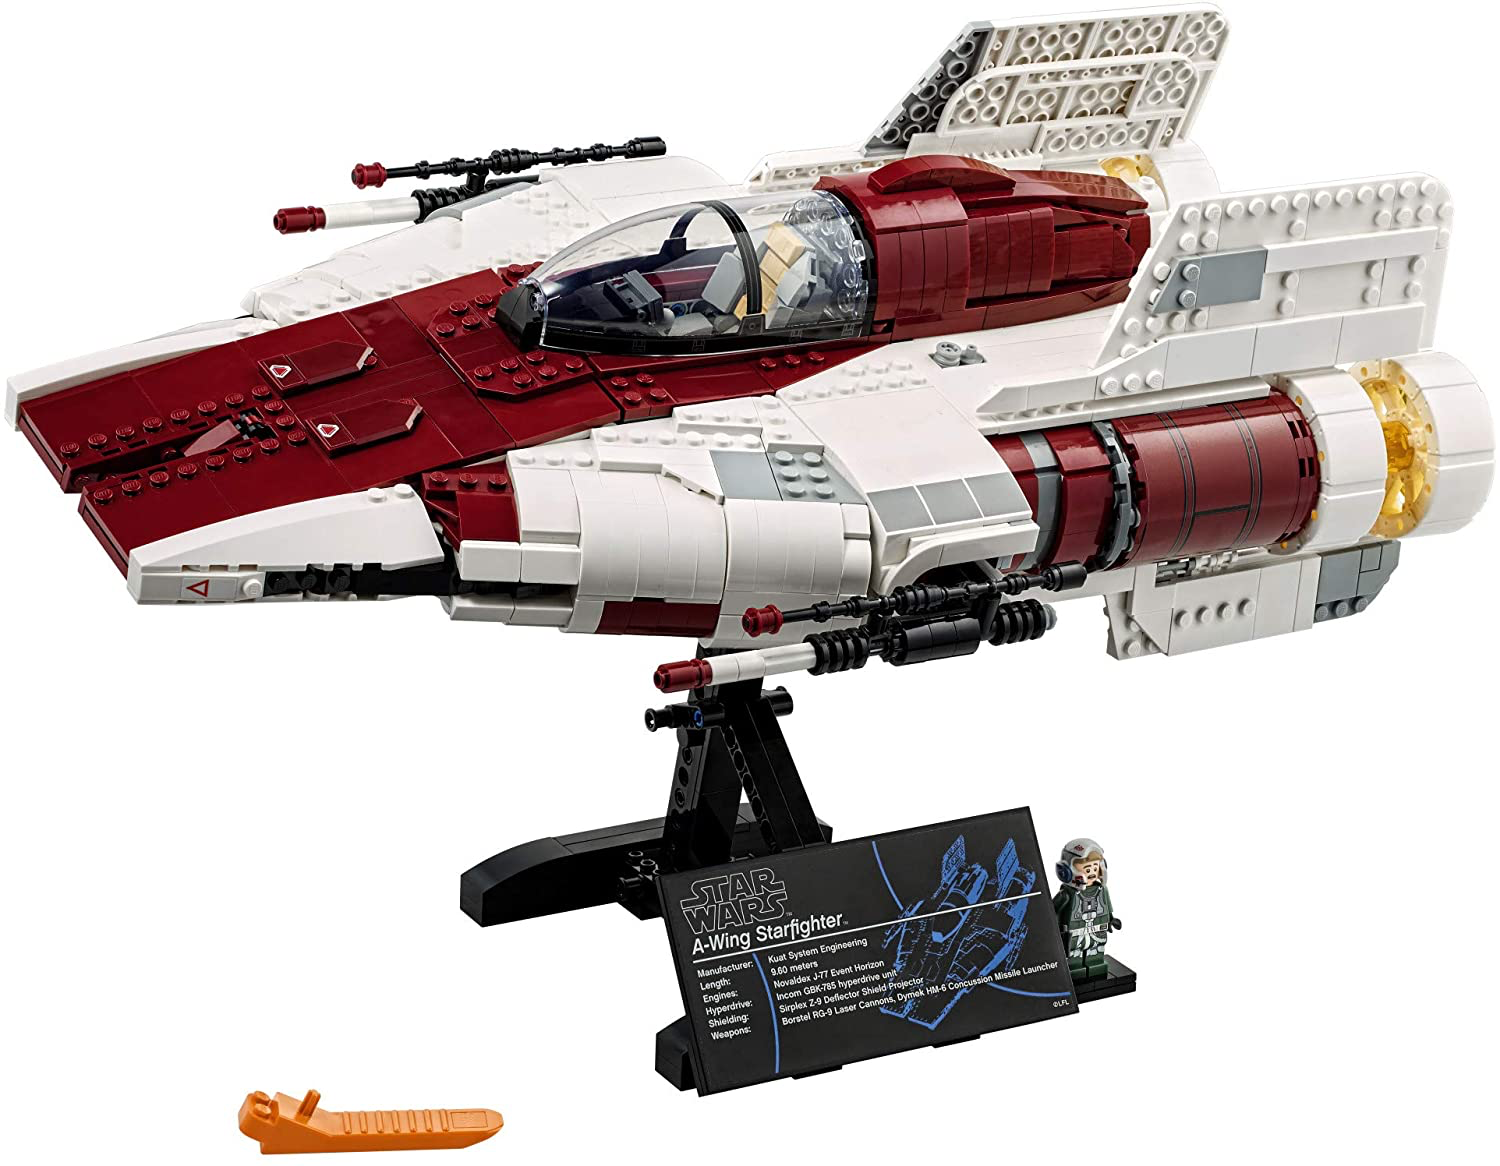 ROTJ A-Wing Starfighter Lego Set 3